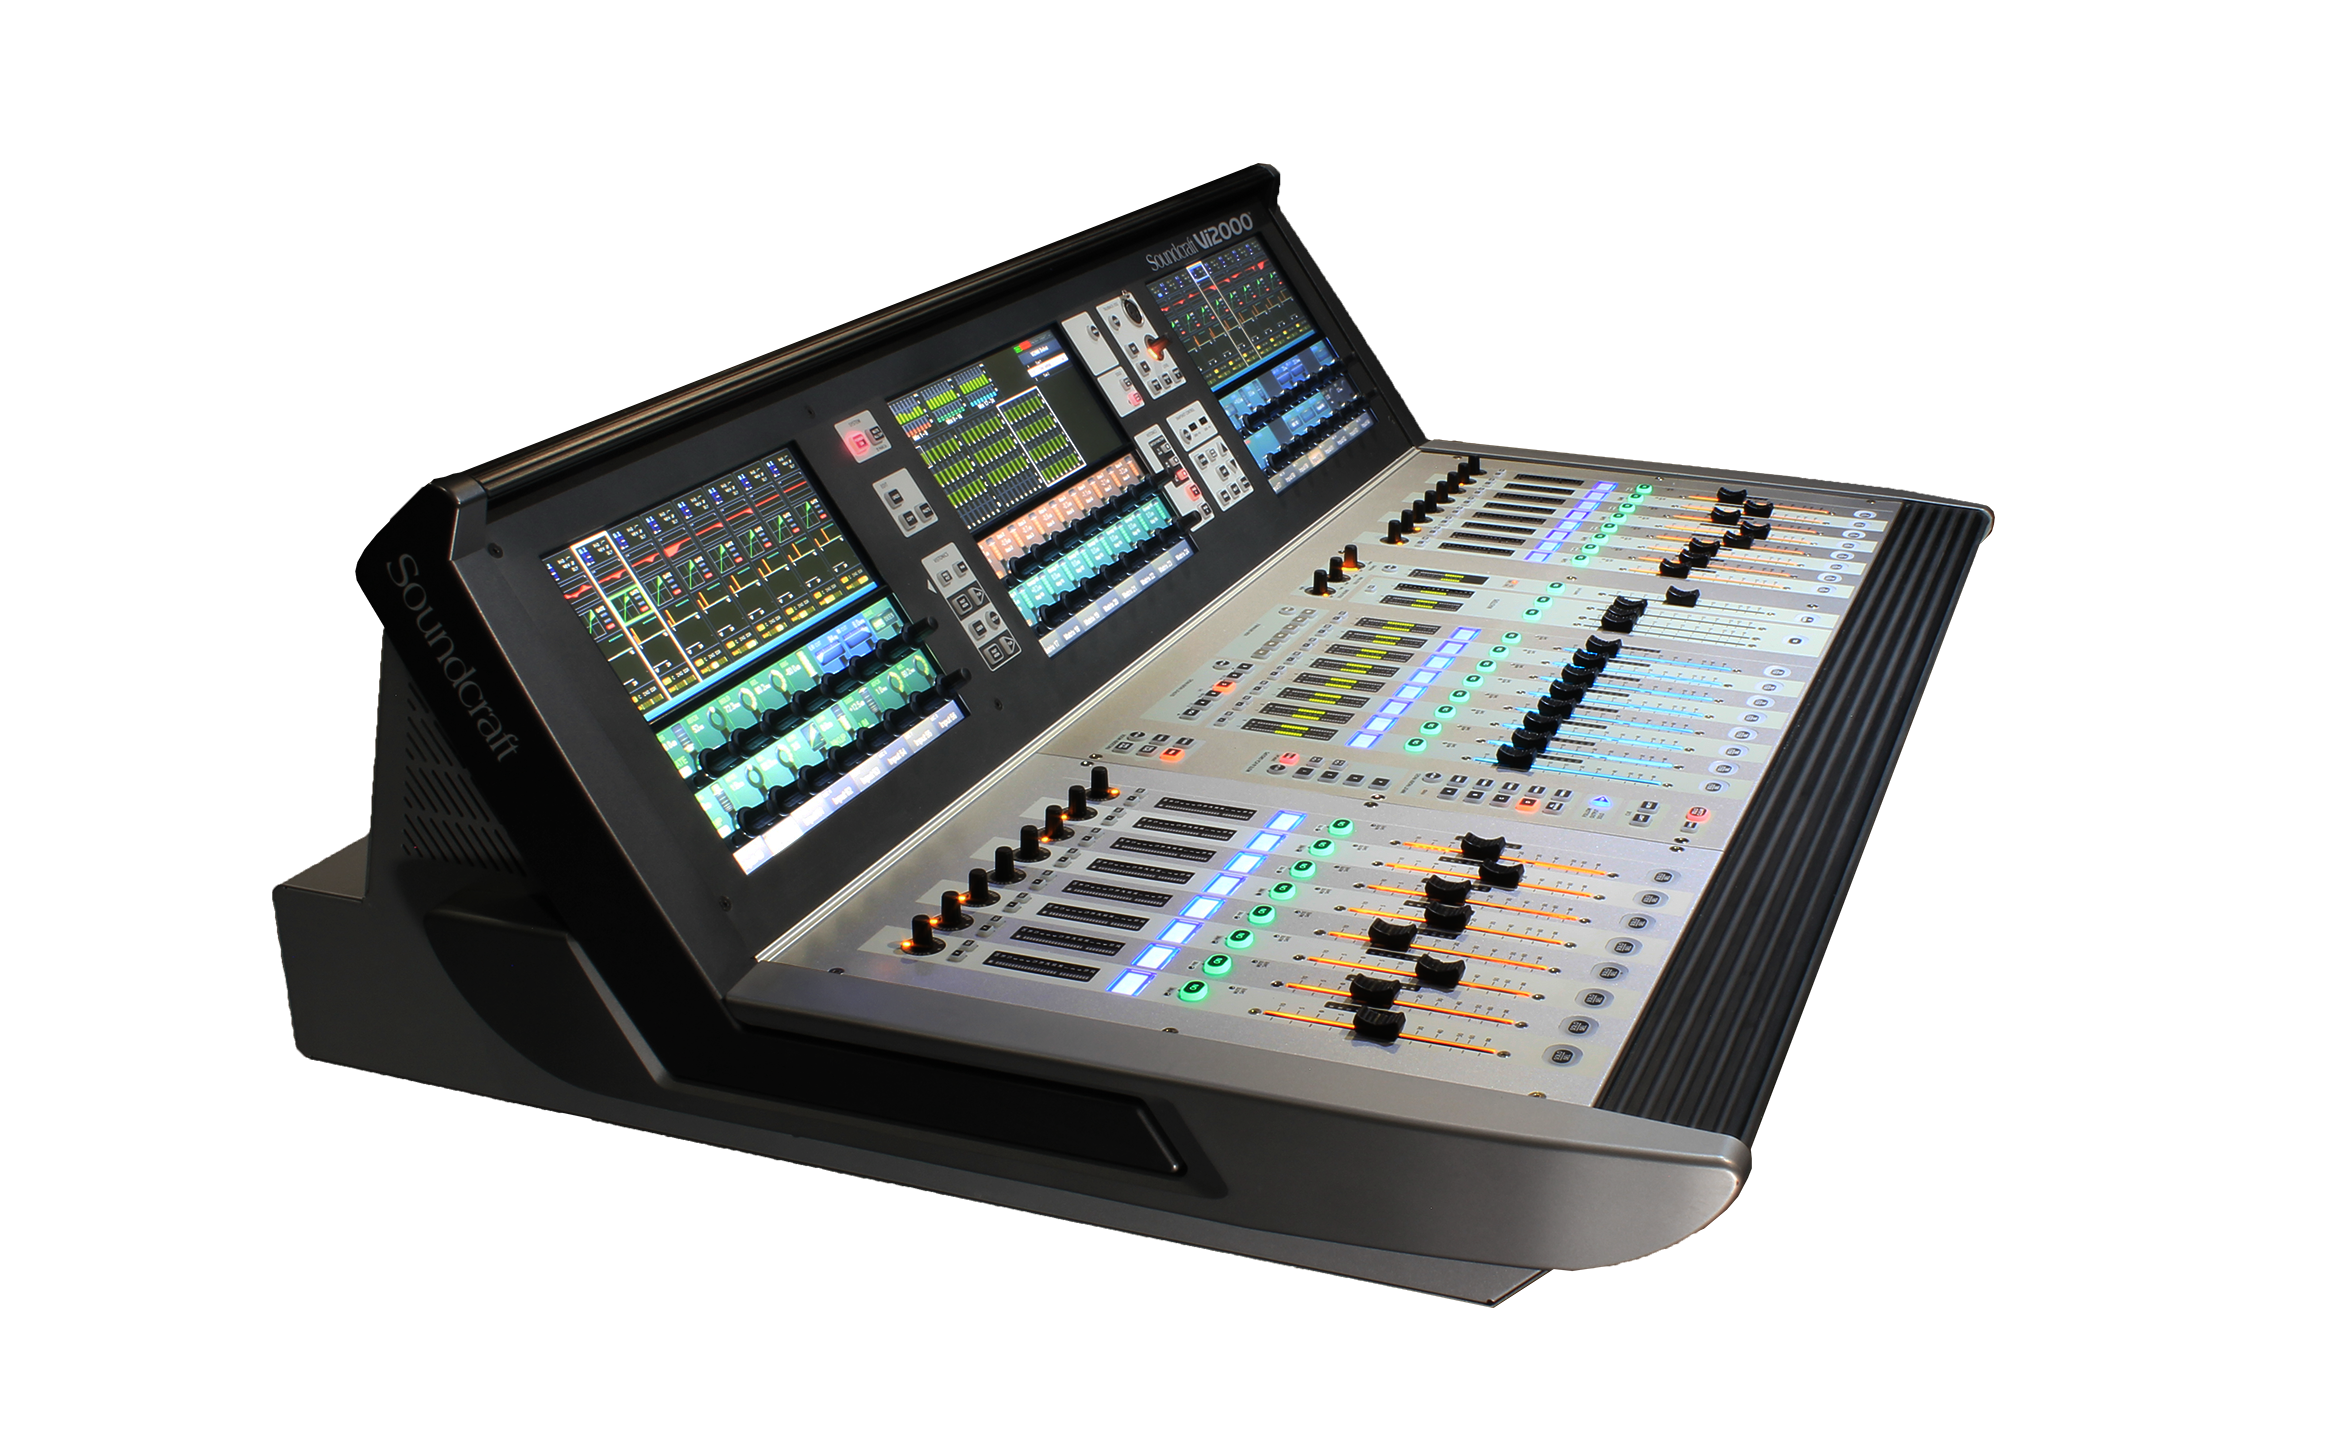 vi2000 soundcraft professional audio mixers. Black Bedroom Furniture Sets. Home Design Ideas